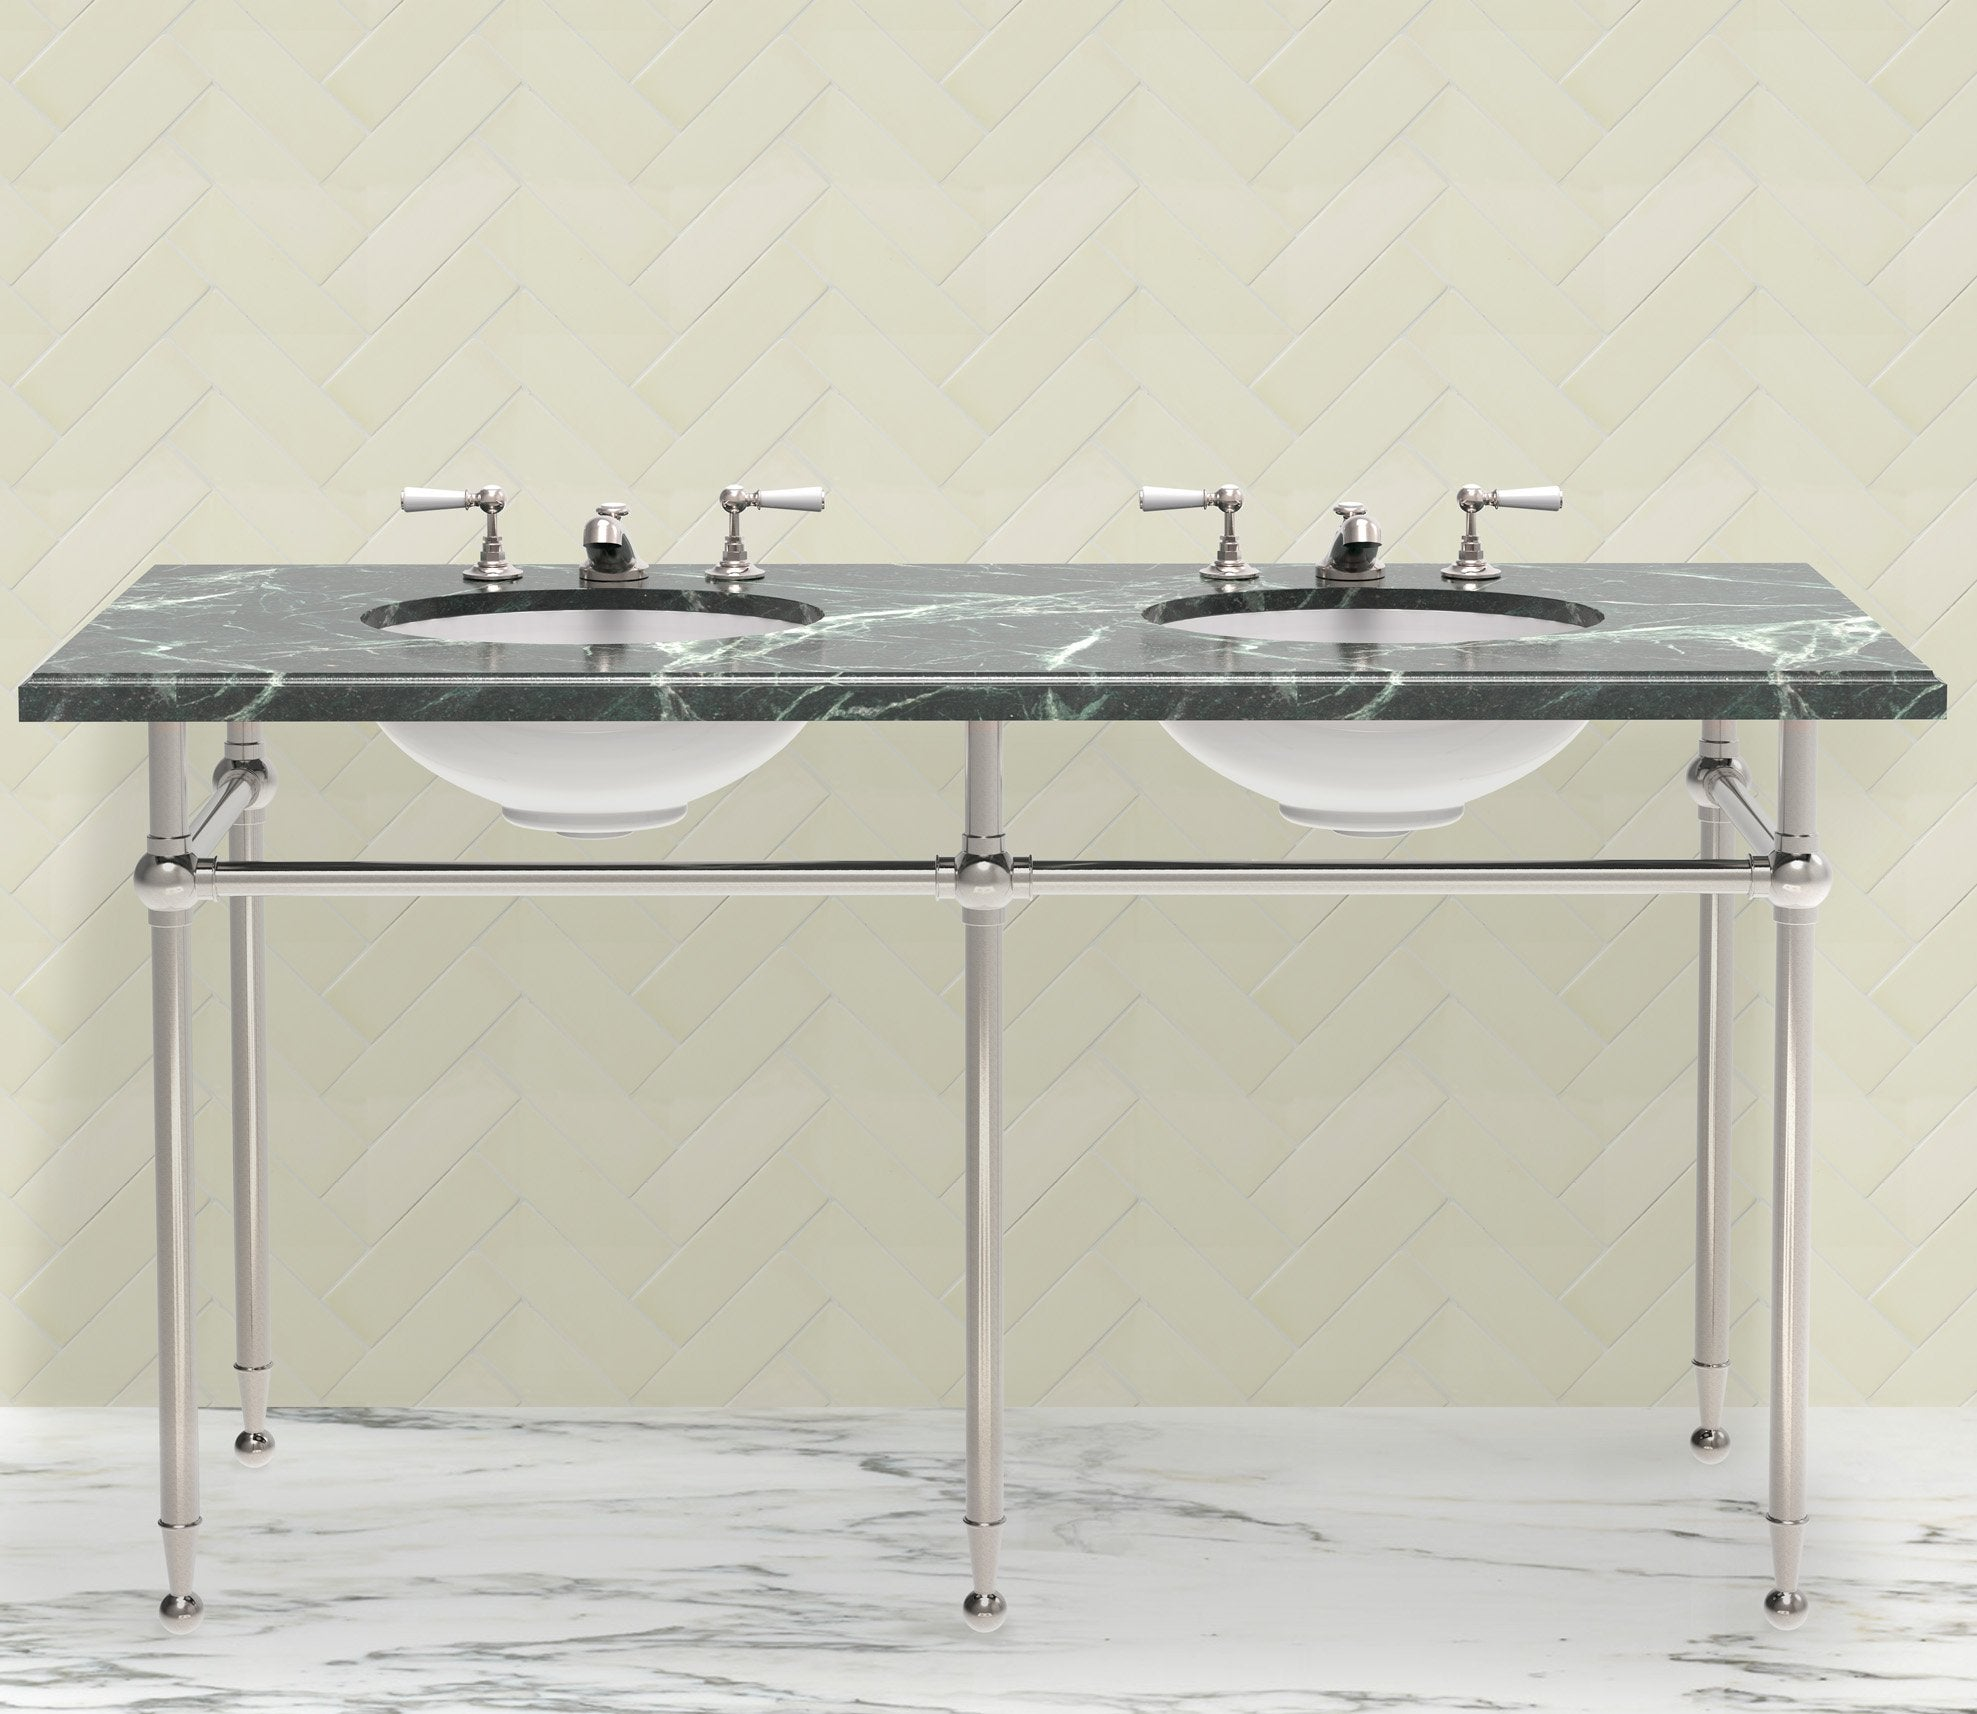 Hanbury Washstand Double 5-Leg Product Image 2